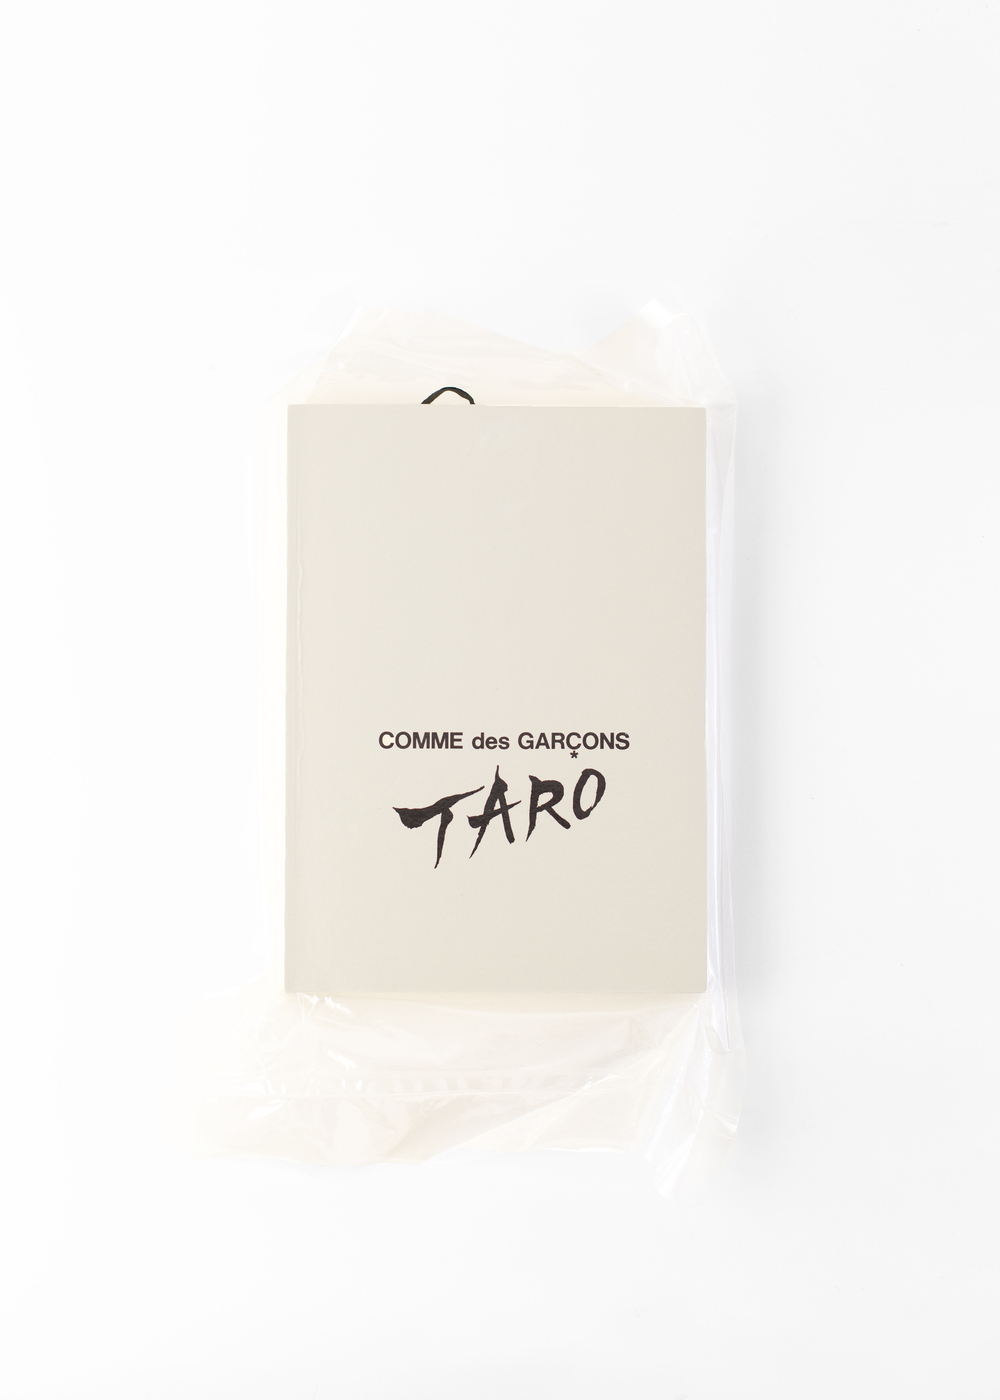 "Comme Des Garçons x Taro Okamoto</br>Notebook 2012</br>€100 <a href=""https://www.paypal.com/cgi-bin/webscr?cmd=_s-xclick&amp;hosted_button_id=9D9PU8ZDH5UEW"">Add to Cart</a>"